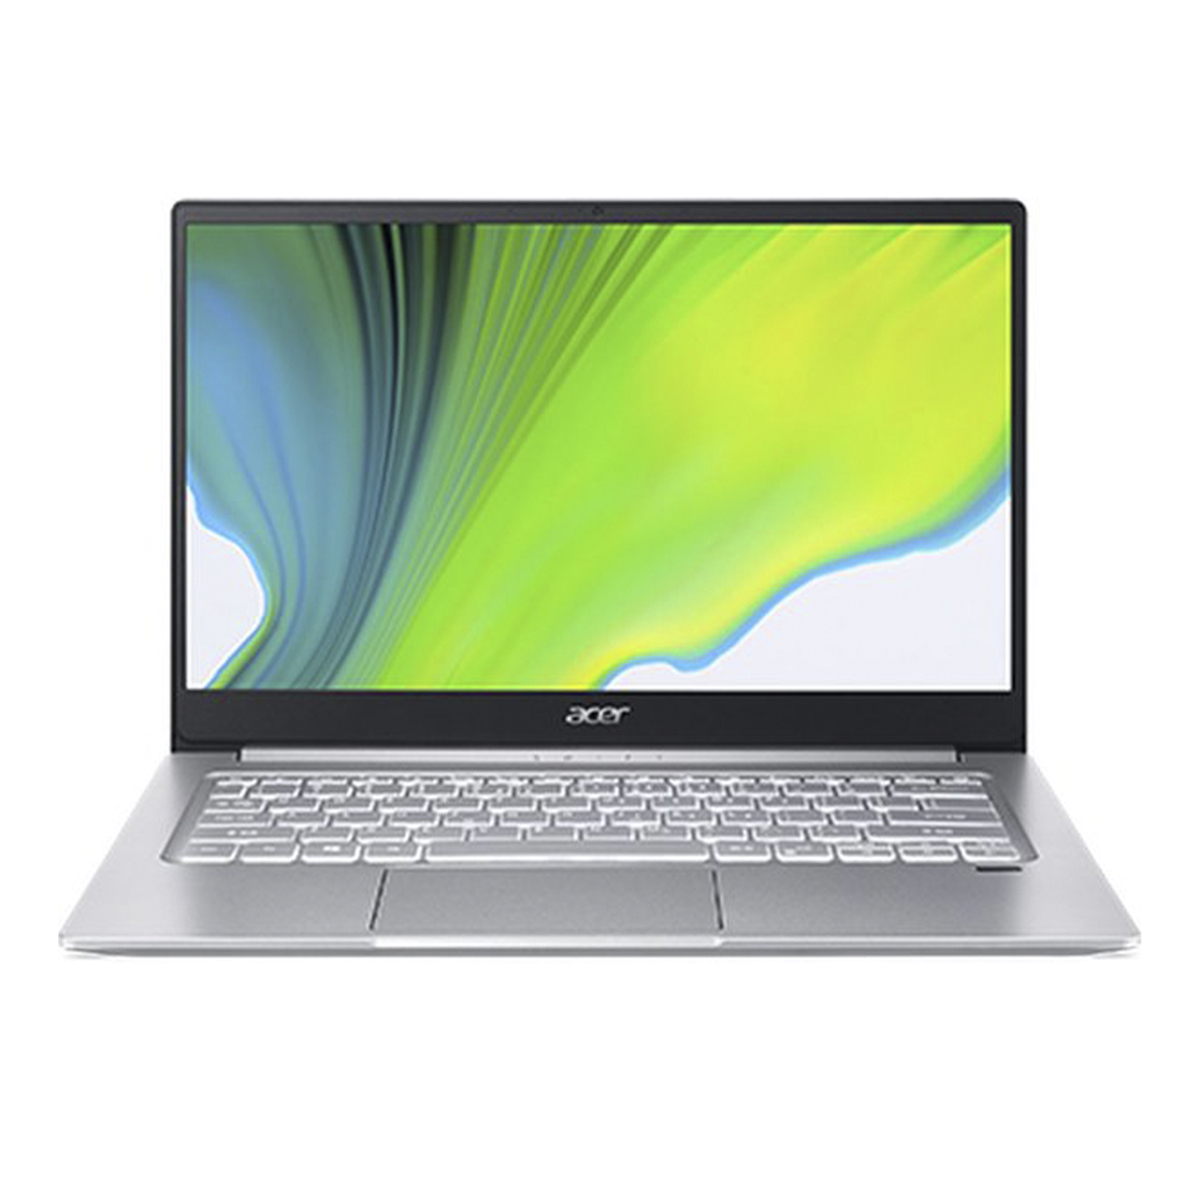 Acer Swift 3 NX.HUKEM.001 Laptop,Core i7-1065G7,16GB RAM,1TB SSD,2GB MX350 Graphics,Windows10,14inch FHD,Iron